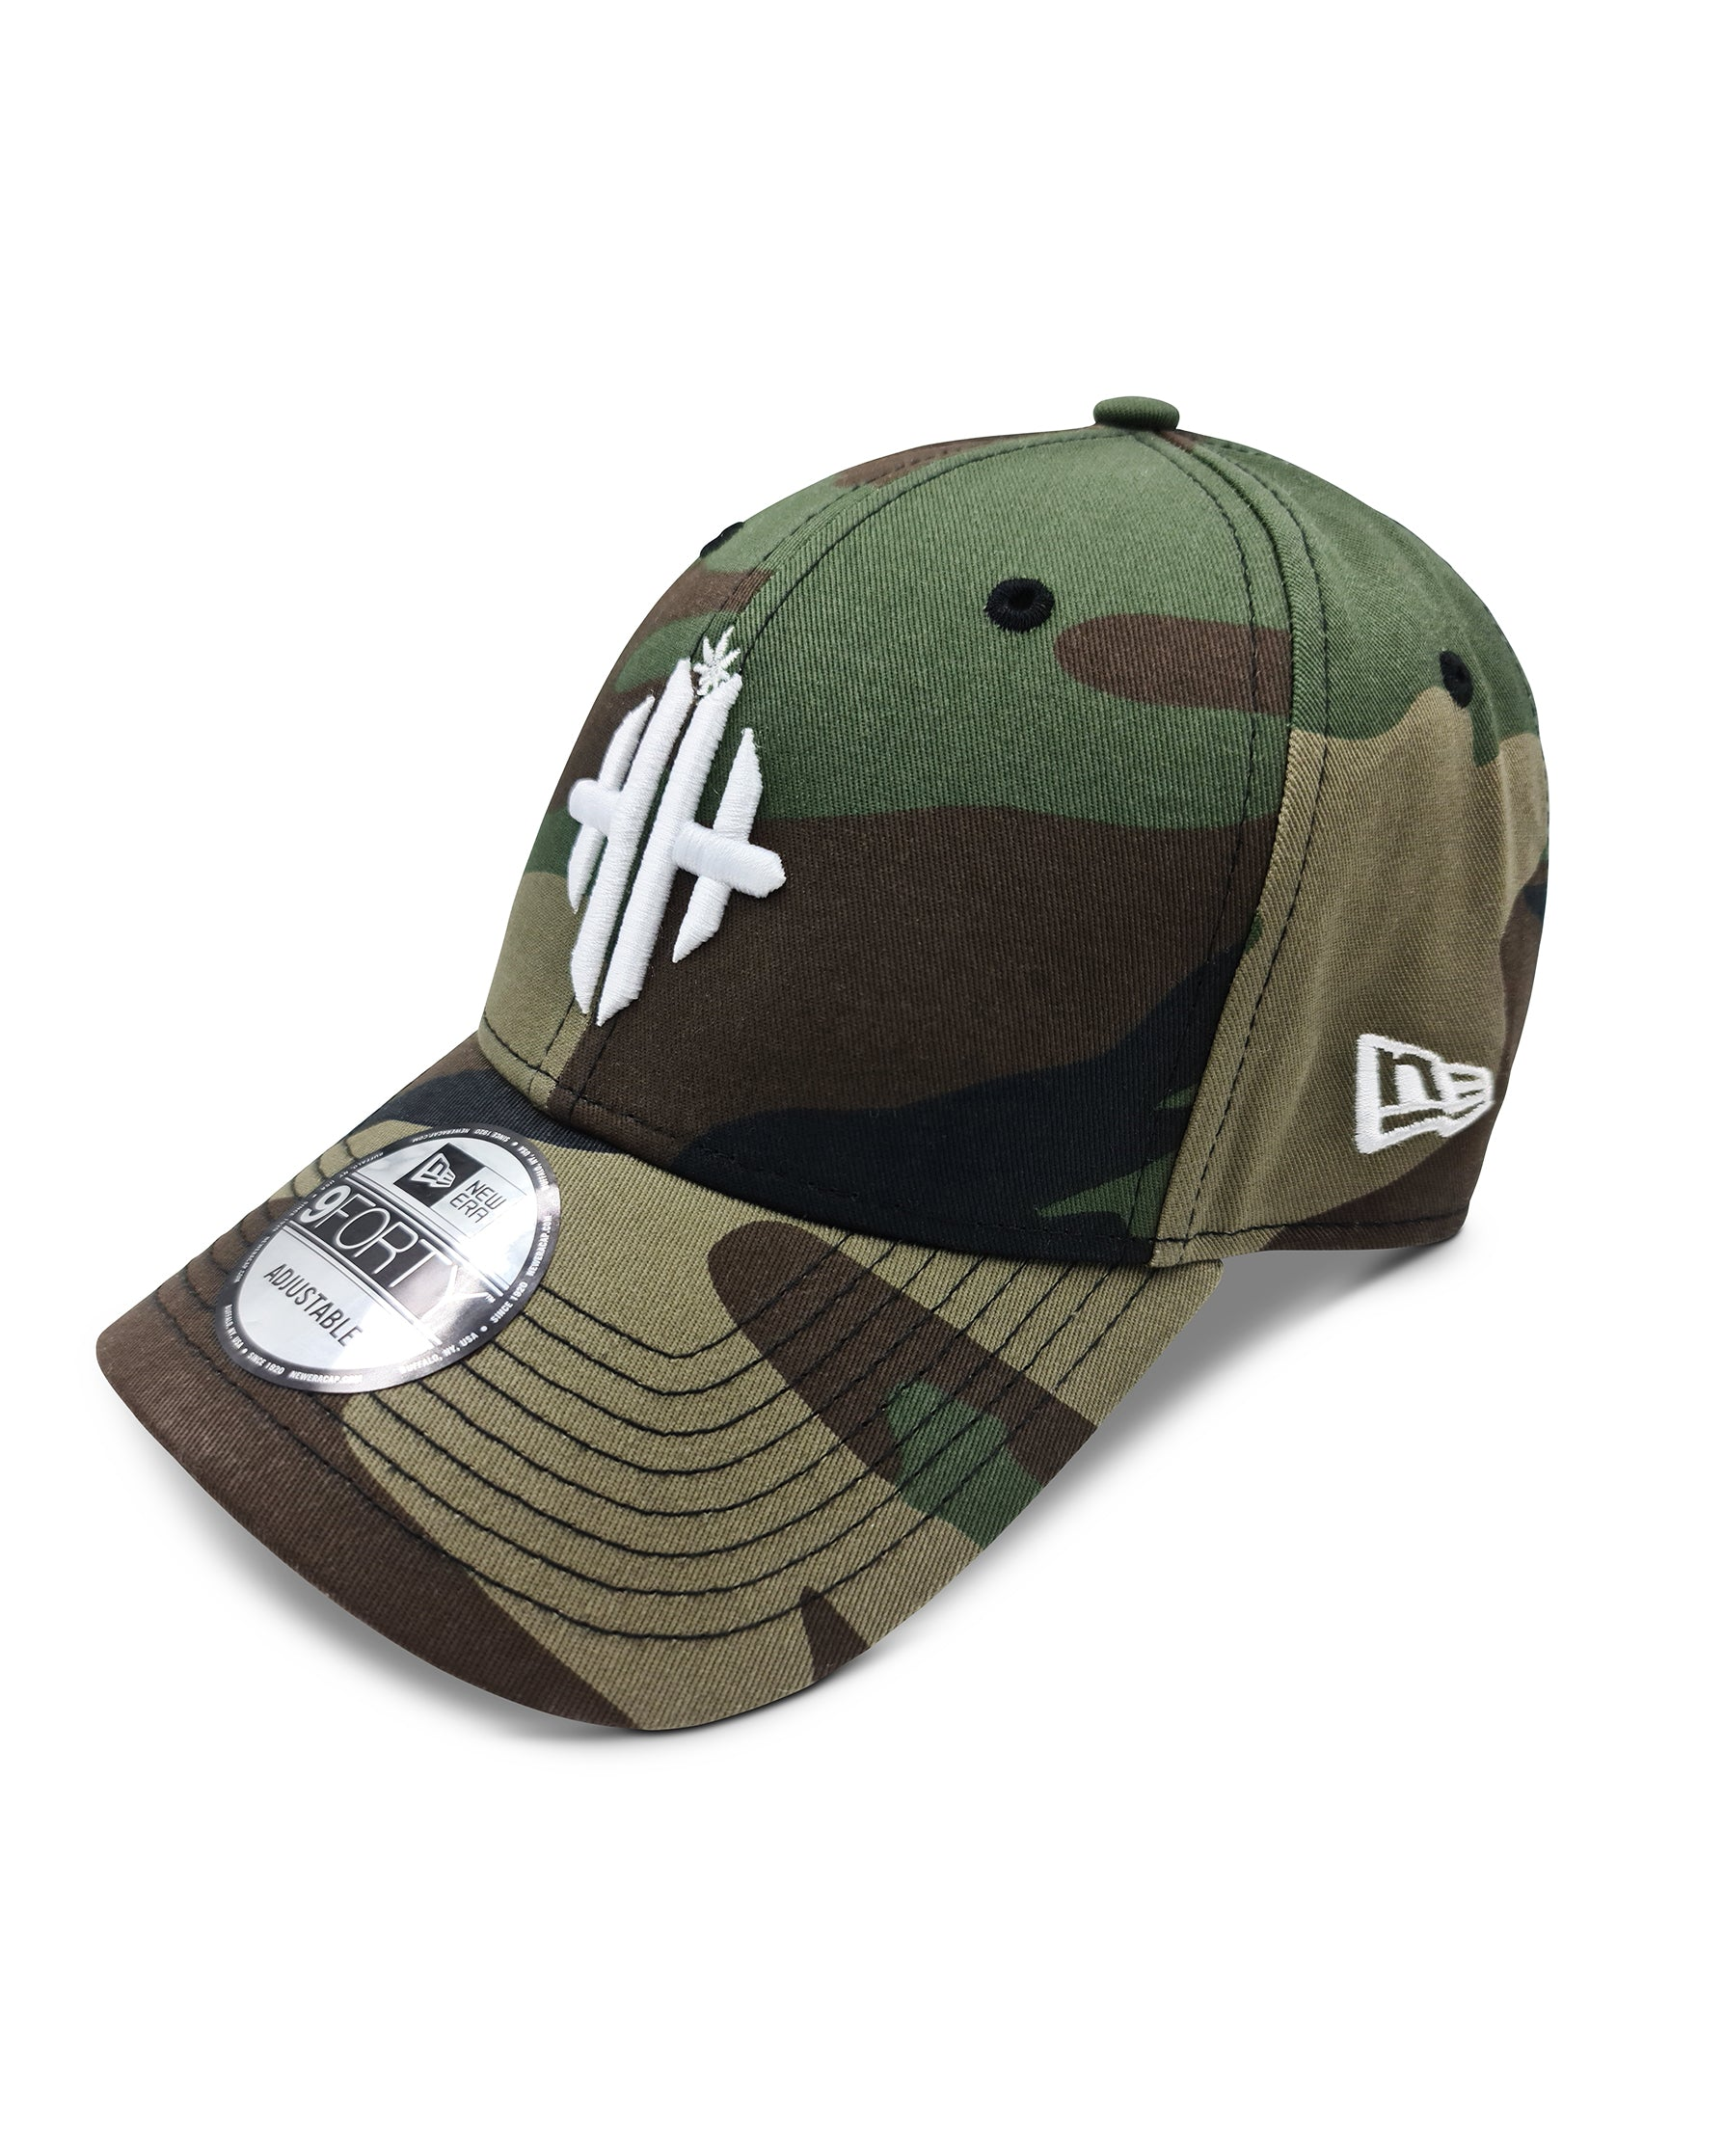 Herbman Hustlin x New Era 9FORTY® Monogram Cap - Green Camo/White - LIMITED EDITION - Front